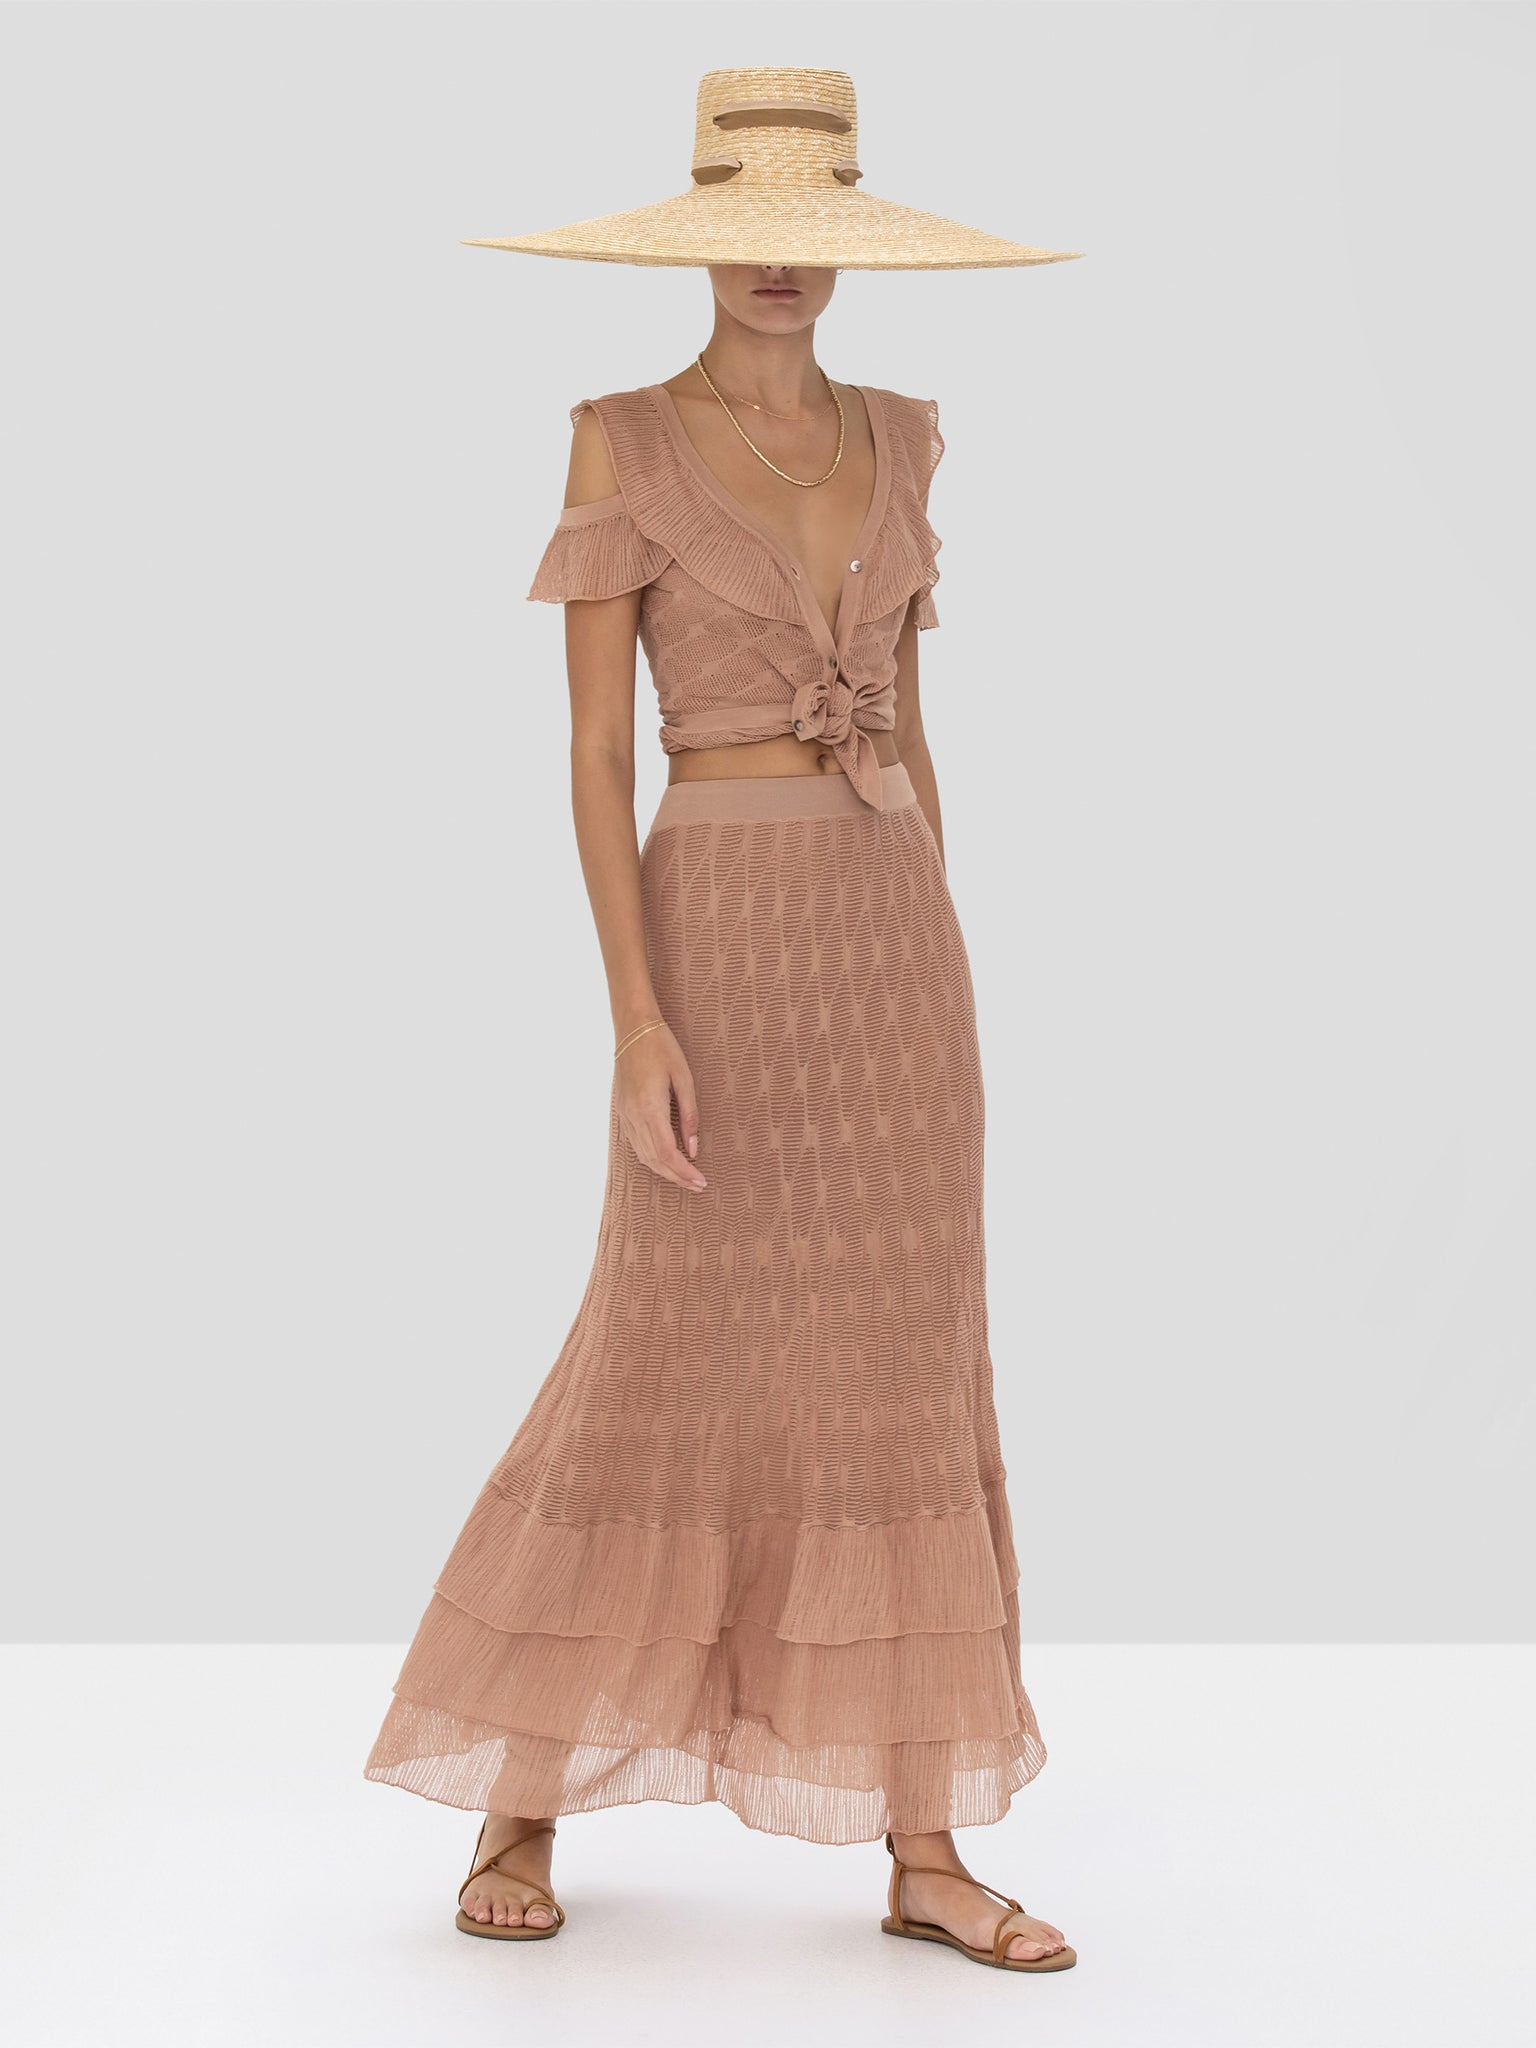 Alexis Belva Top and Dimona Skirt in Sand Spring Summer 2020 Collection